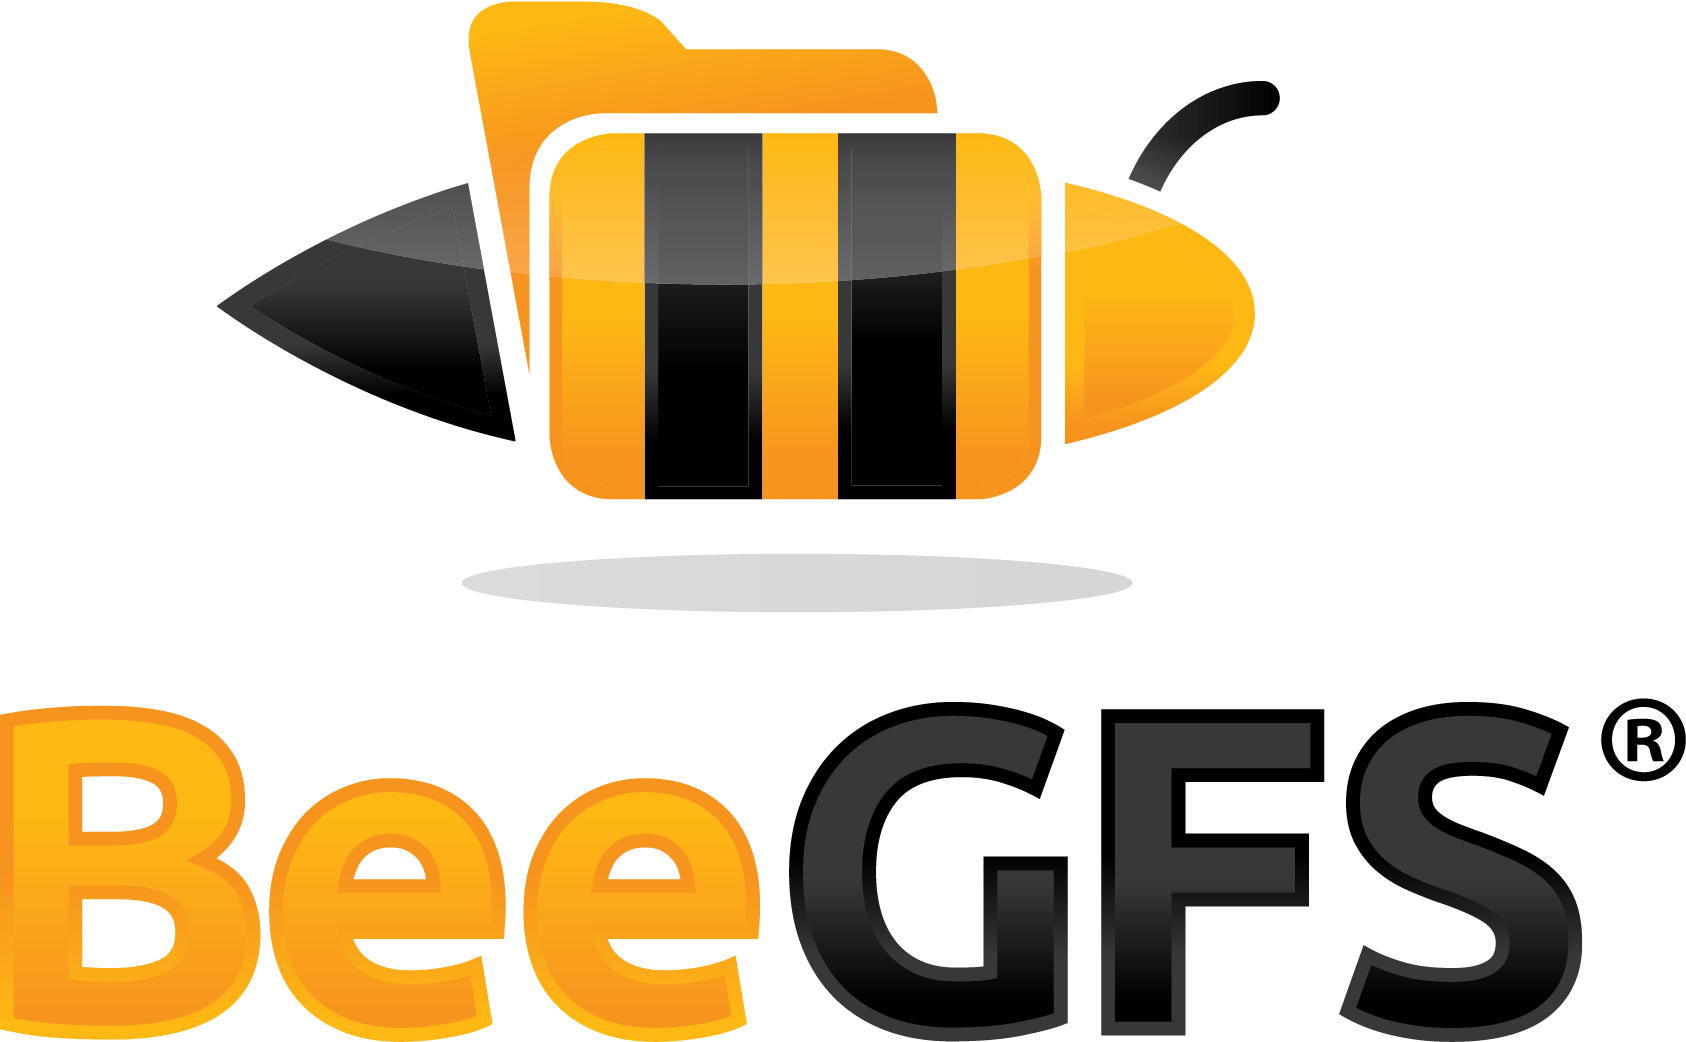 Visit BeeGFS